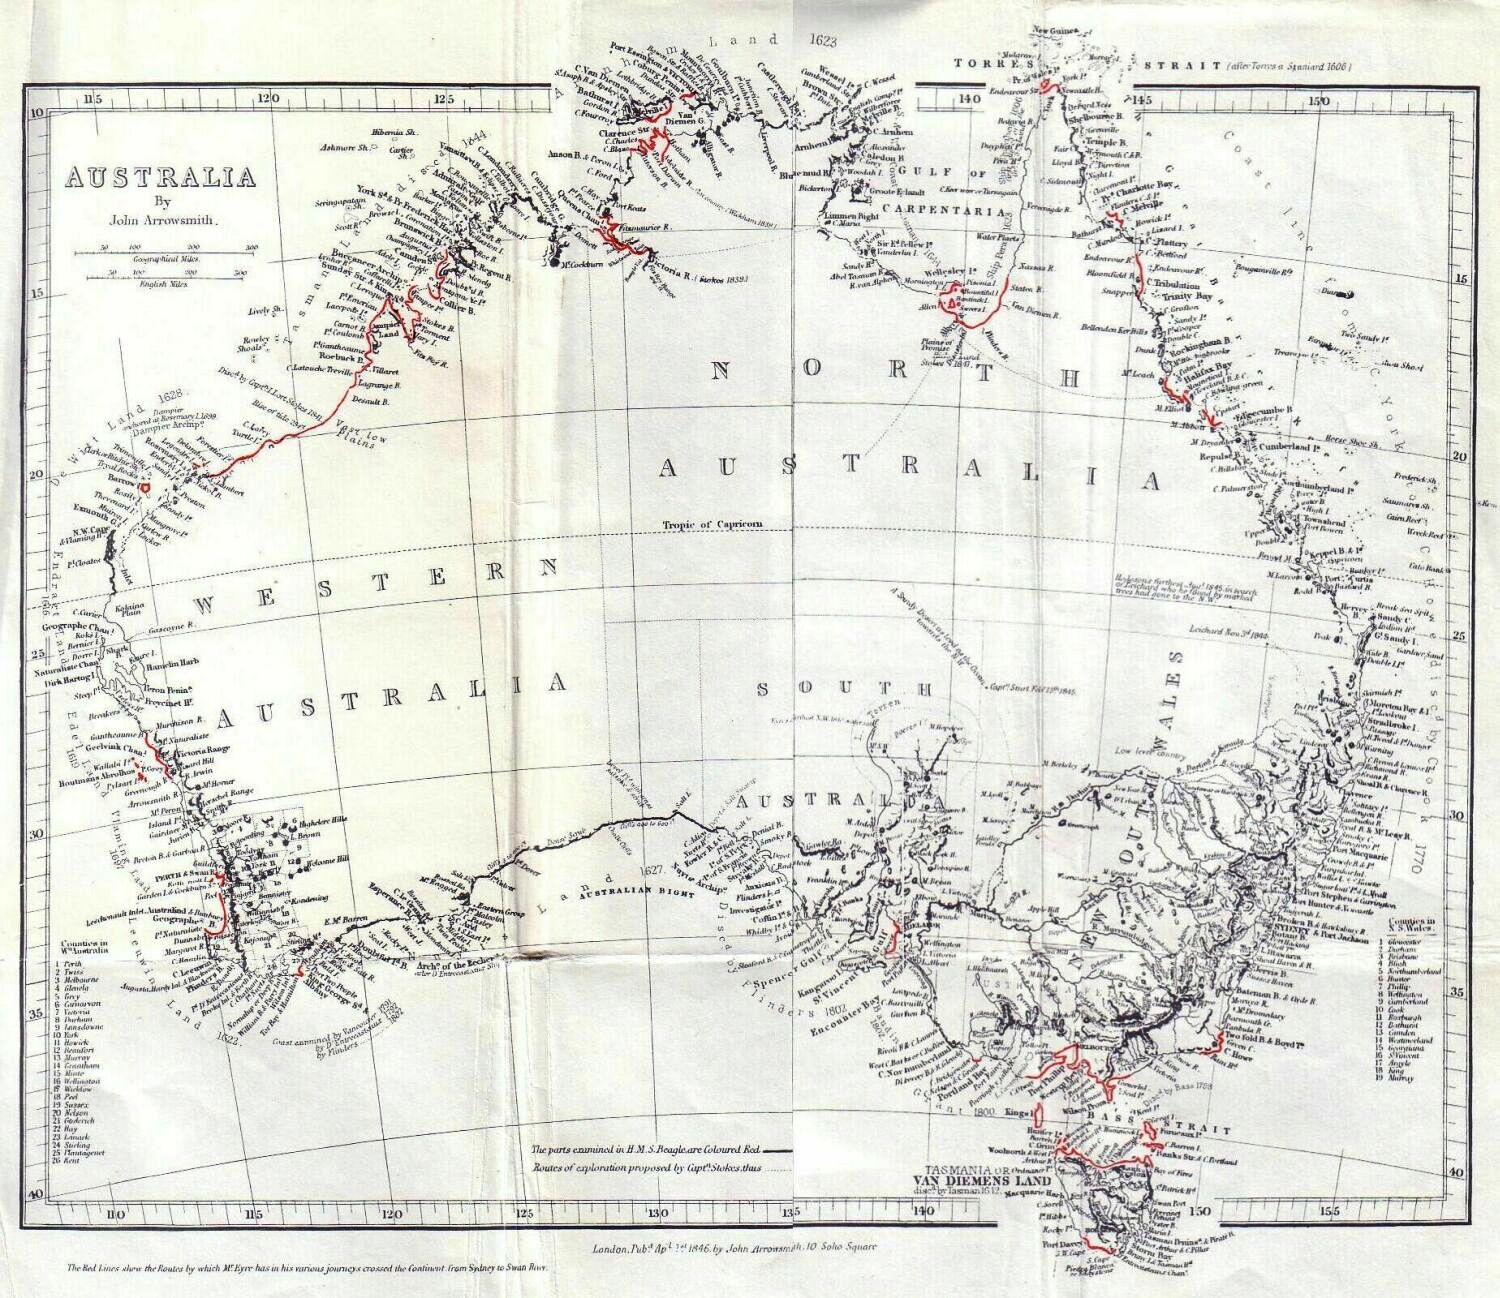 Tablecloth Size Chart: General Chart of Australia (Discoveries in Australia).jpg ,Chart